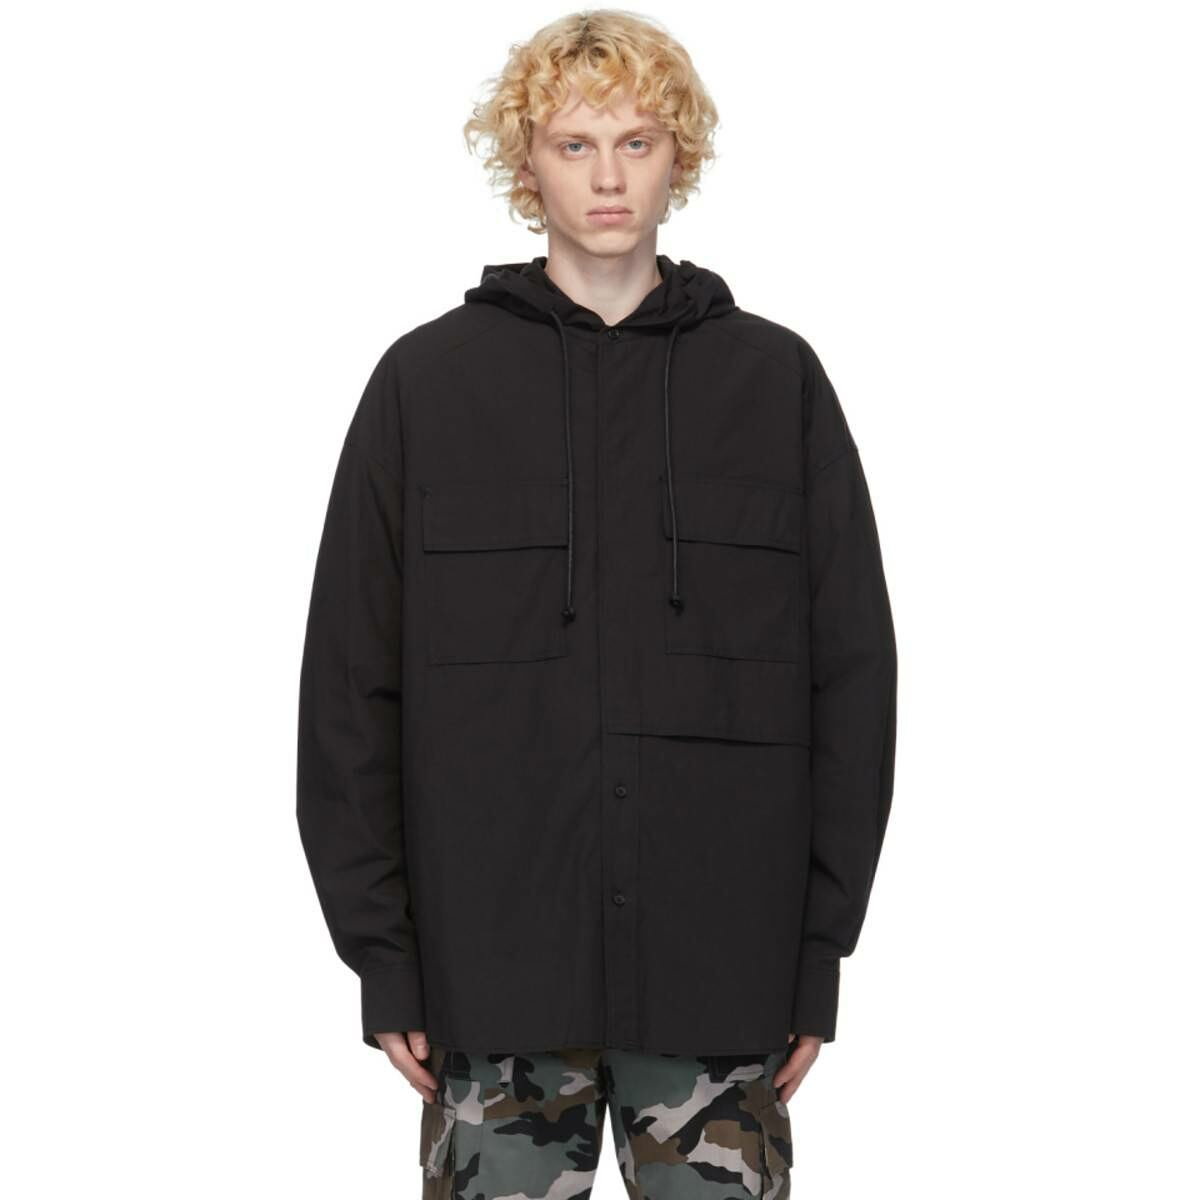 Juun.J Black Hooded Shirt Ssense USA MEN Men FASHION Mens SHIRTS